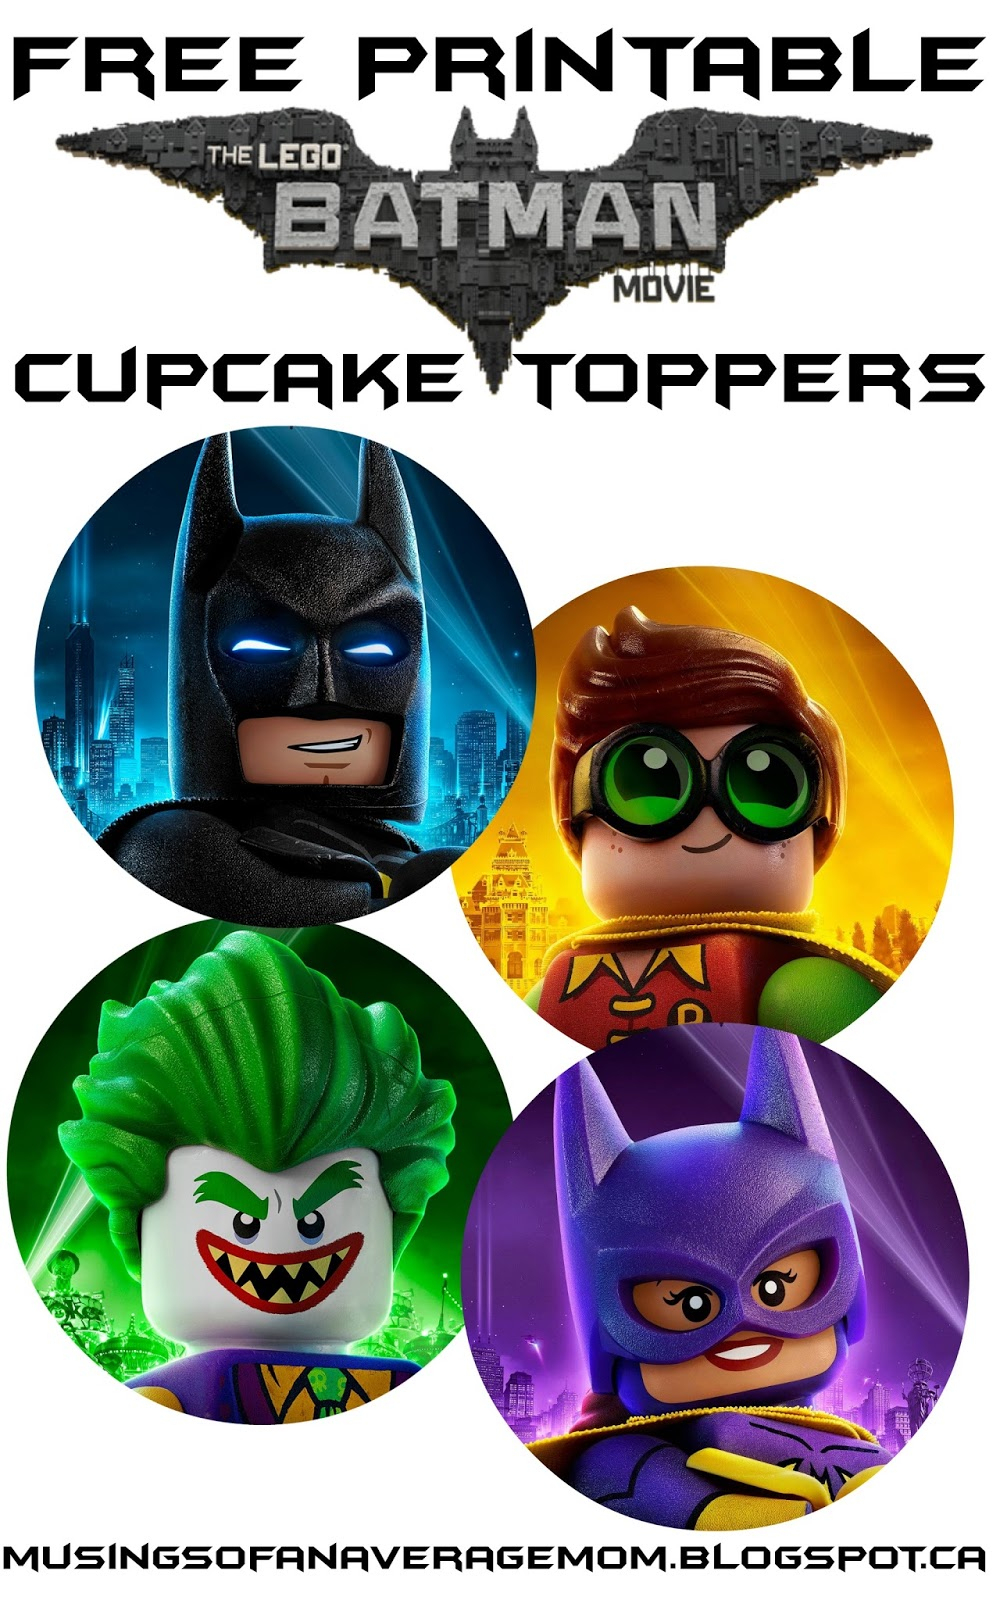 Musings Of An Average Mom: Free Lego Batman Cupcake Toppers - Batman Cupcake Toppers Free Printable